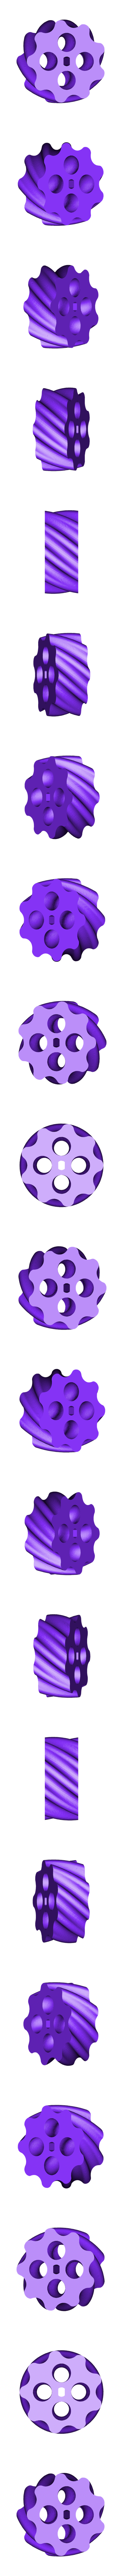 Wheel2.stl Download free STL file Pointlessly complex gear device • 3D print design, harfigger